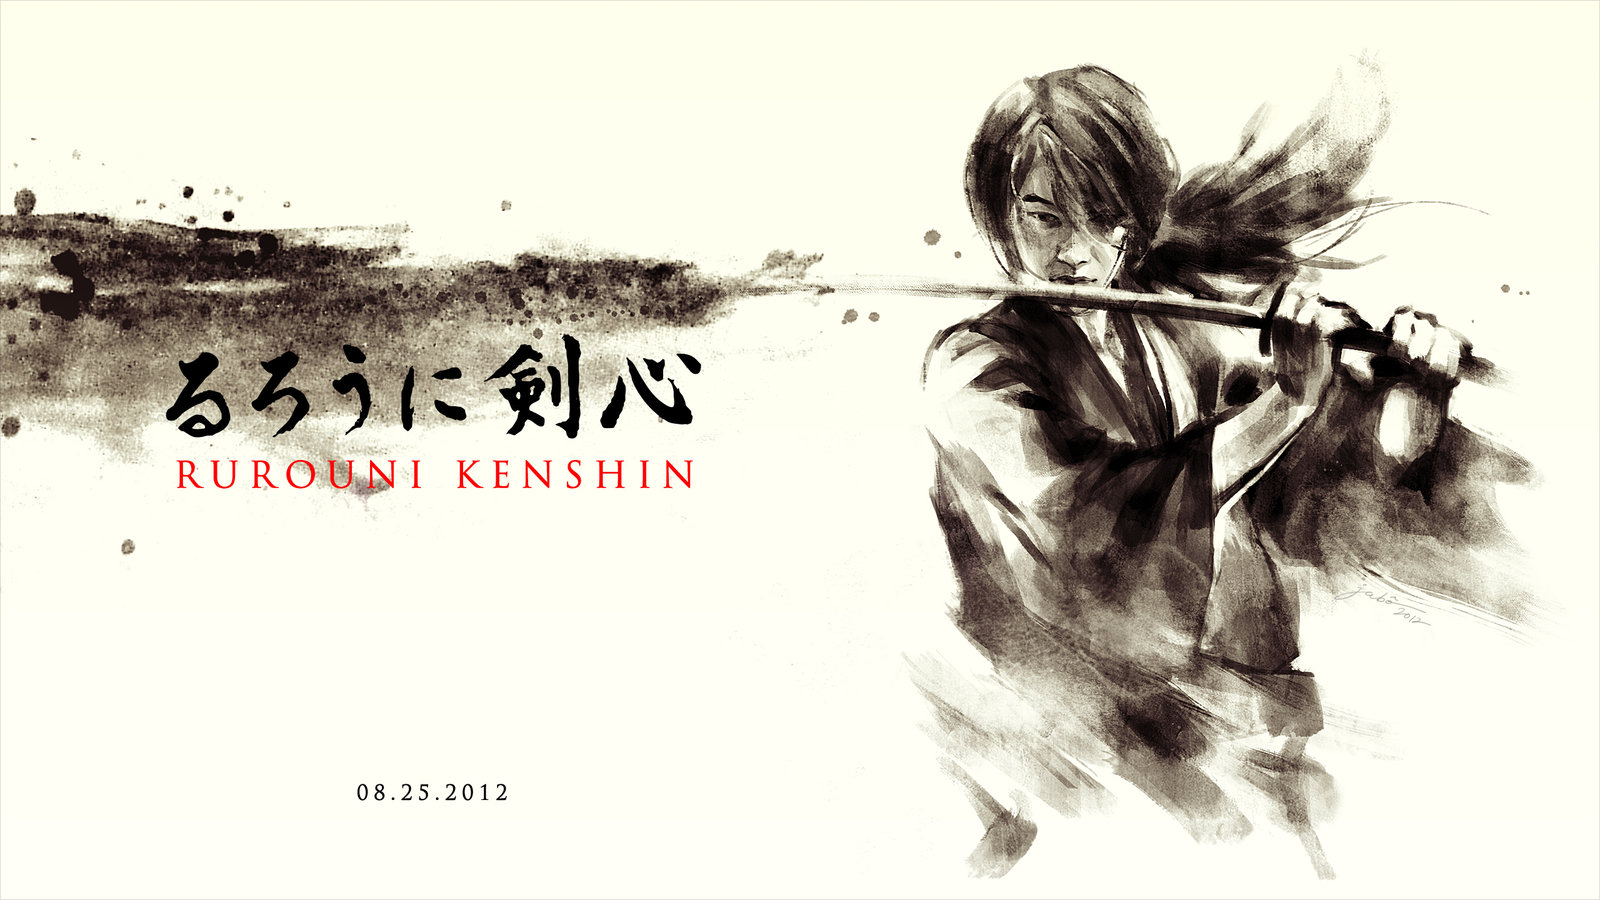 Himura Kenshin Wallpaper - WallpaperSafari